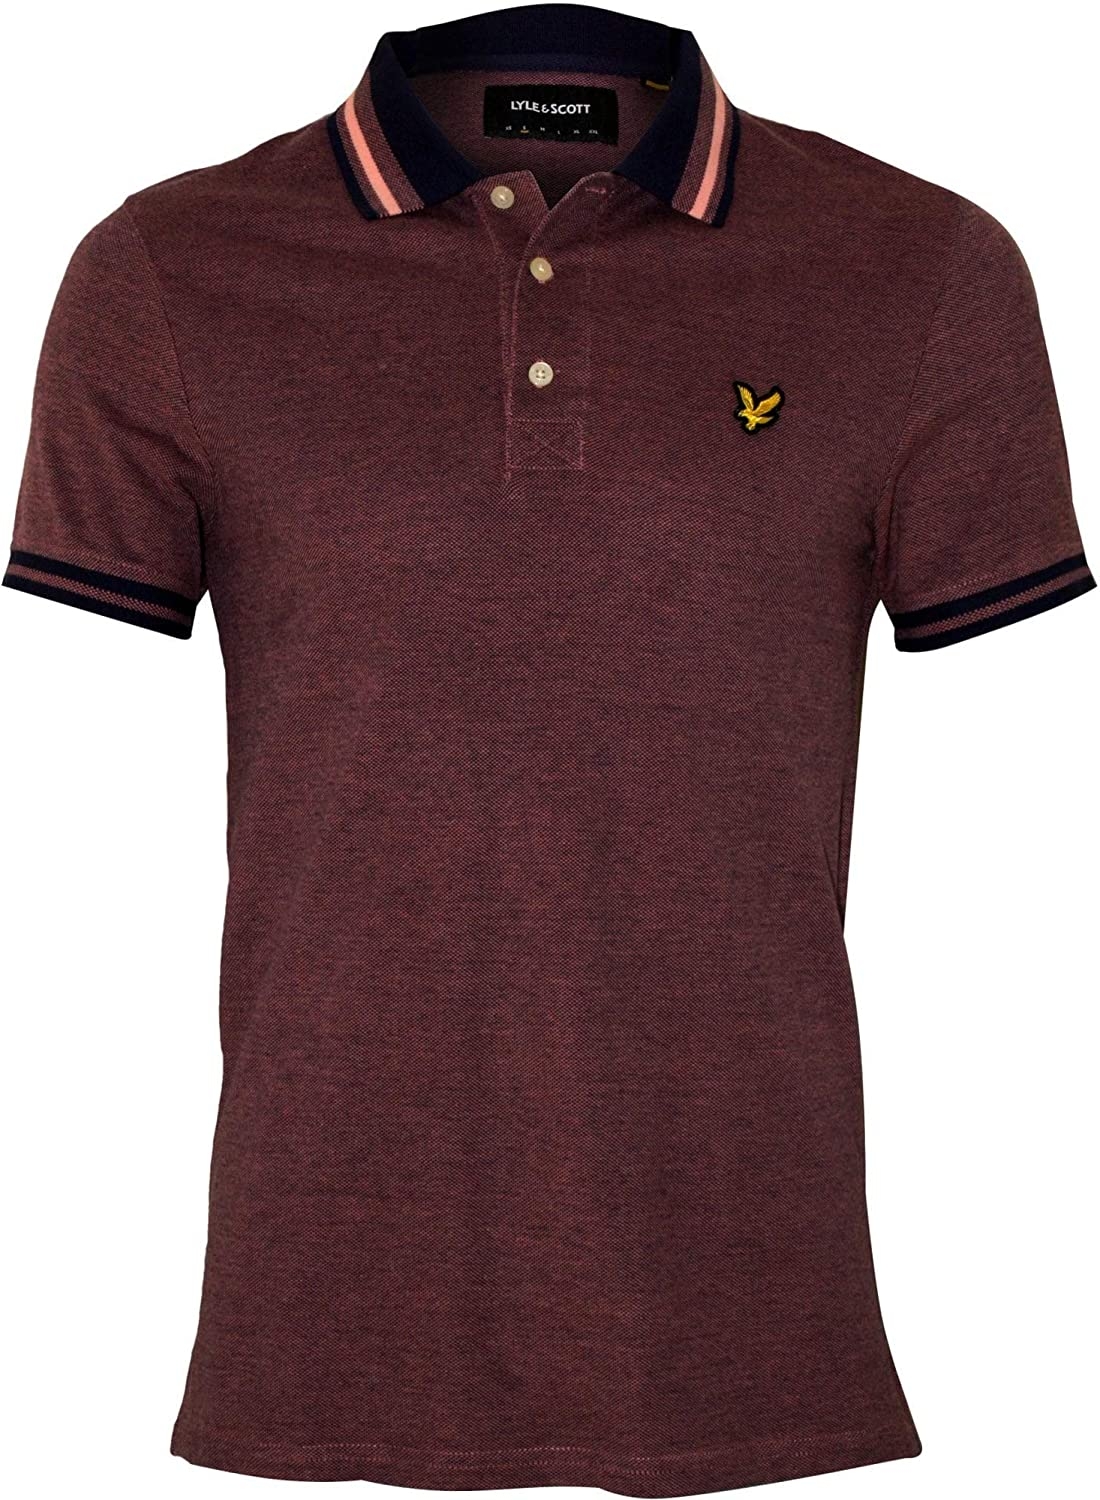 Lyle Scott Tipped Oxford Pique Men's Navy Ranking TOP13 Gifts Polo Lilac Shirt Ma